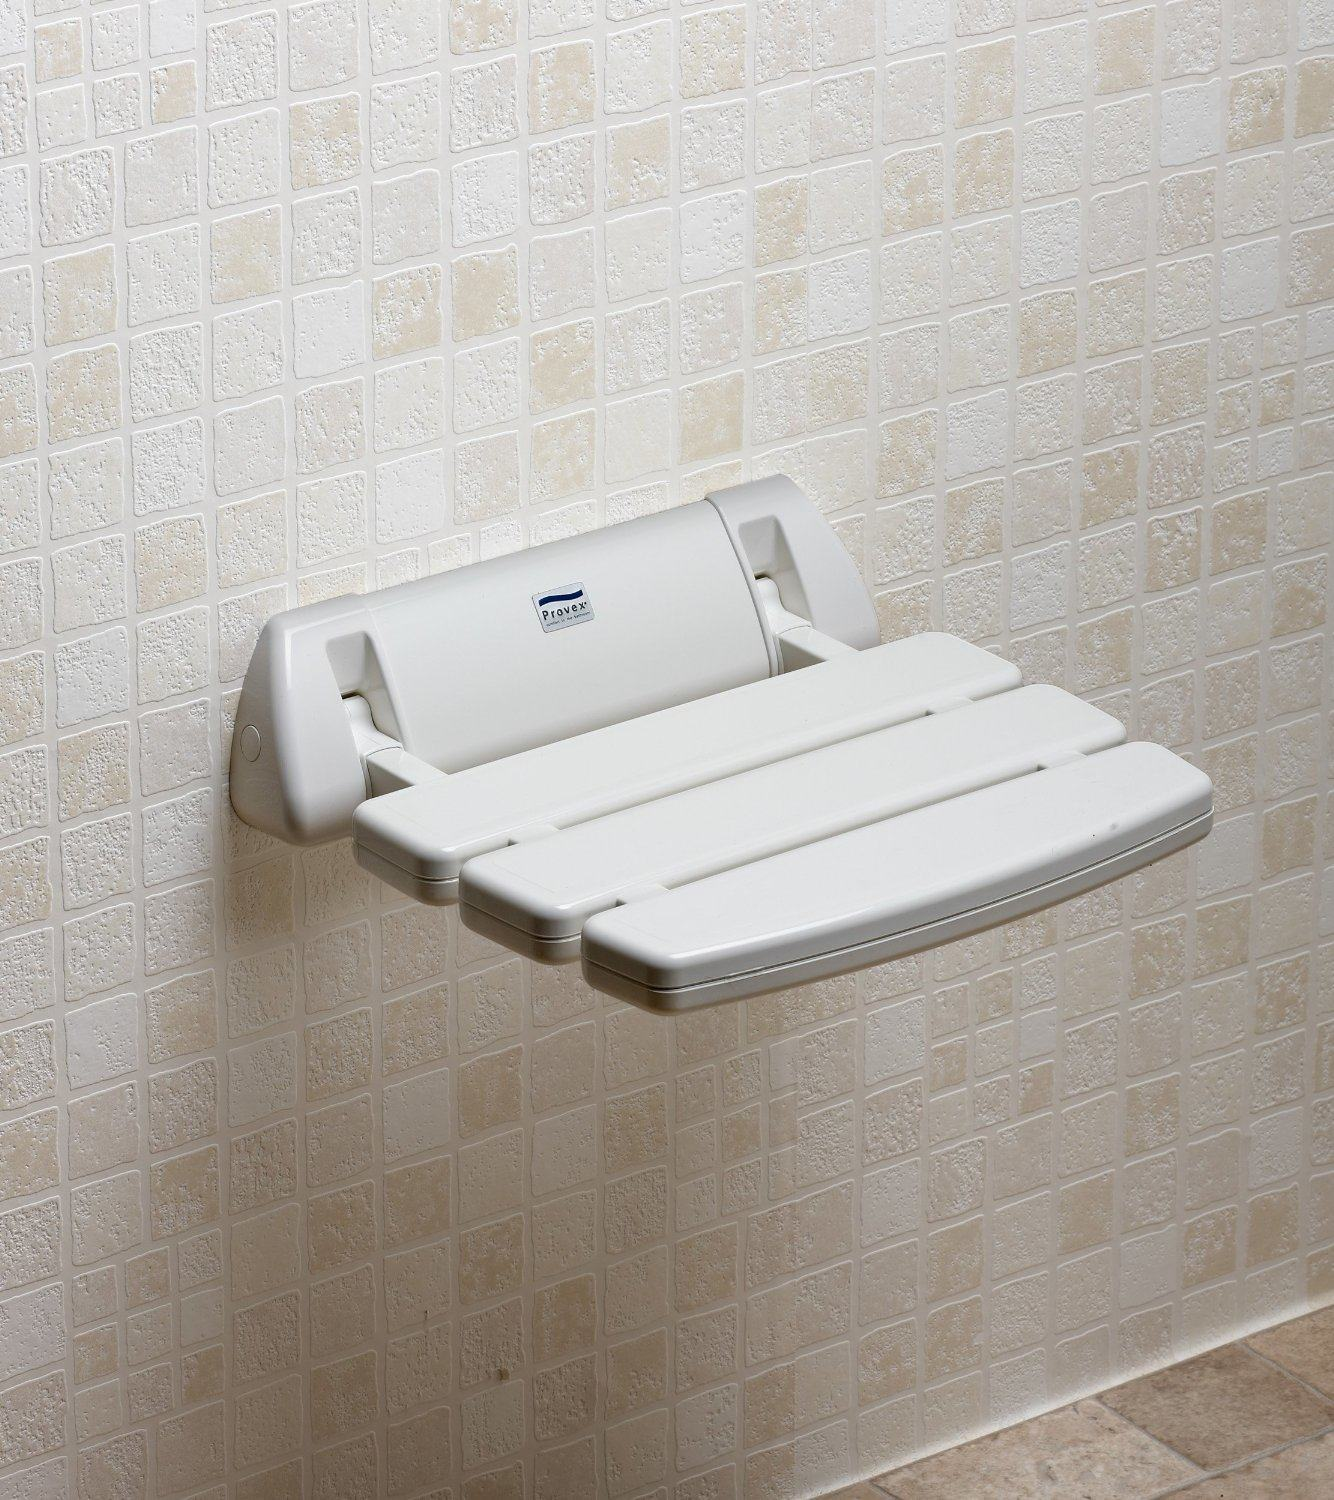 Promed Wall Mounted Folding Slatted Shower Seat Shower Seats Wall Mounted Benches Seats